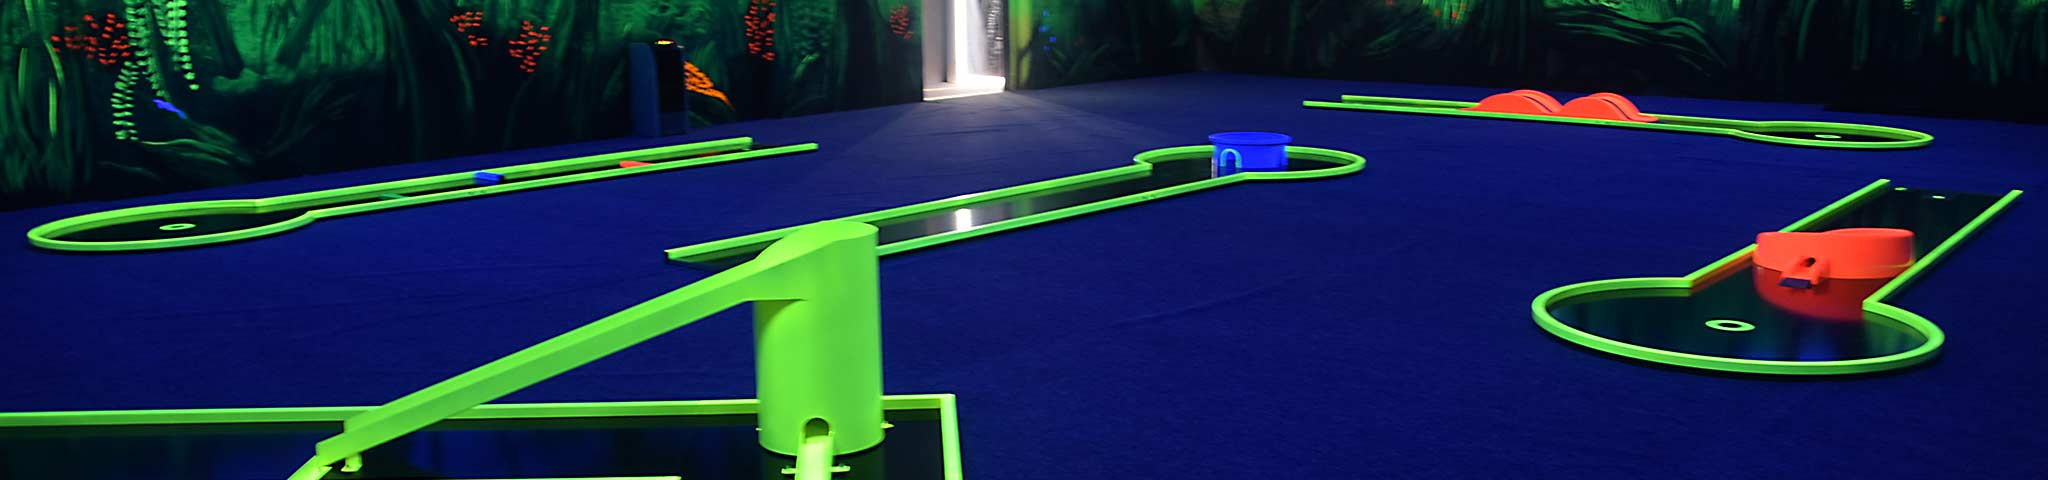 Glow in the Dark - Where Blacklight meets Mini Golf!